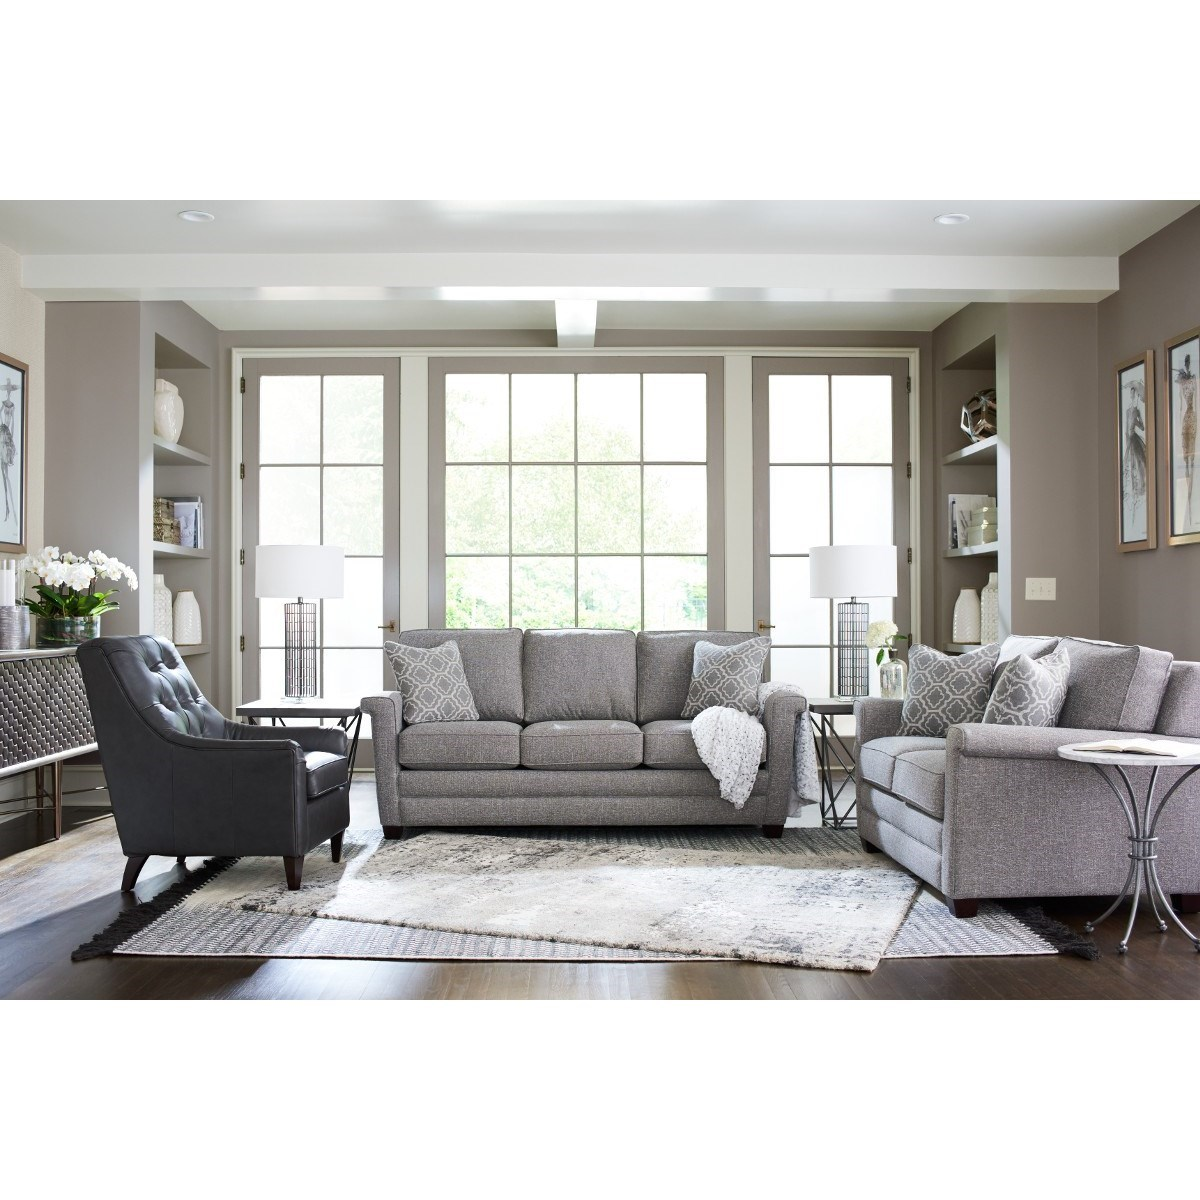 Bexley Living Room Group by La-Z-Boy at Jordan's Home Furnishings